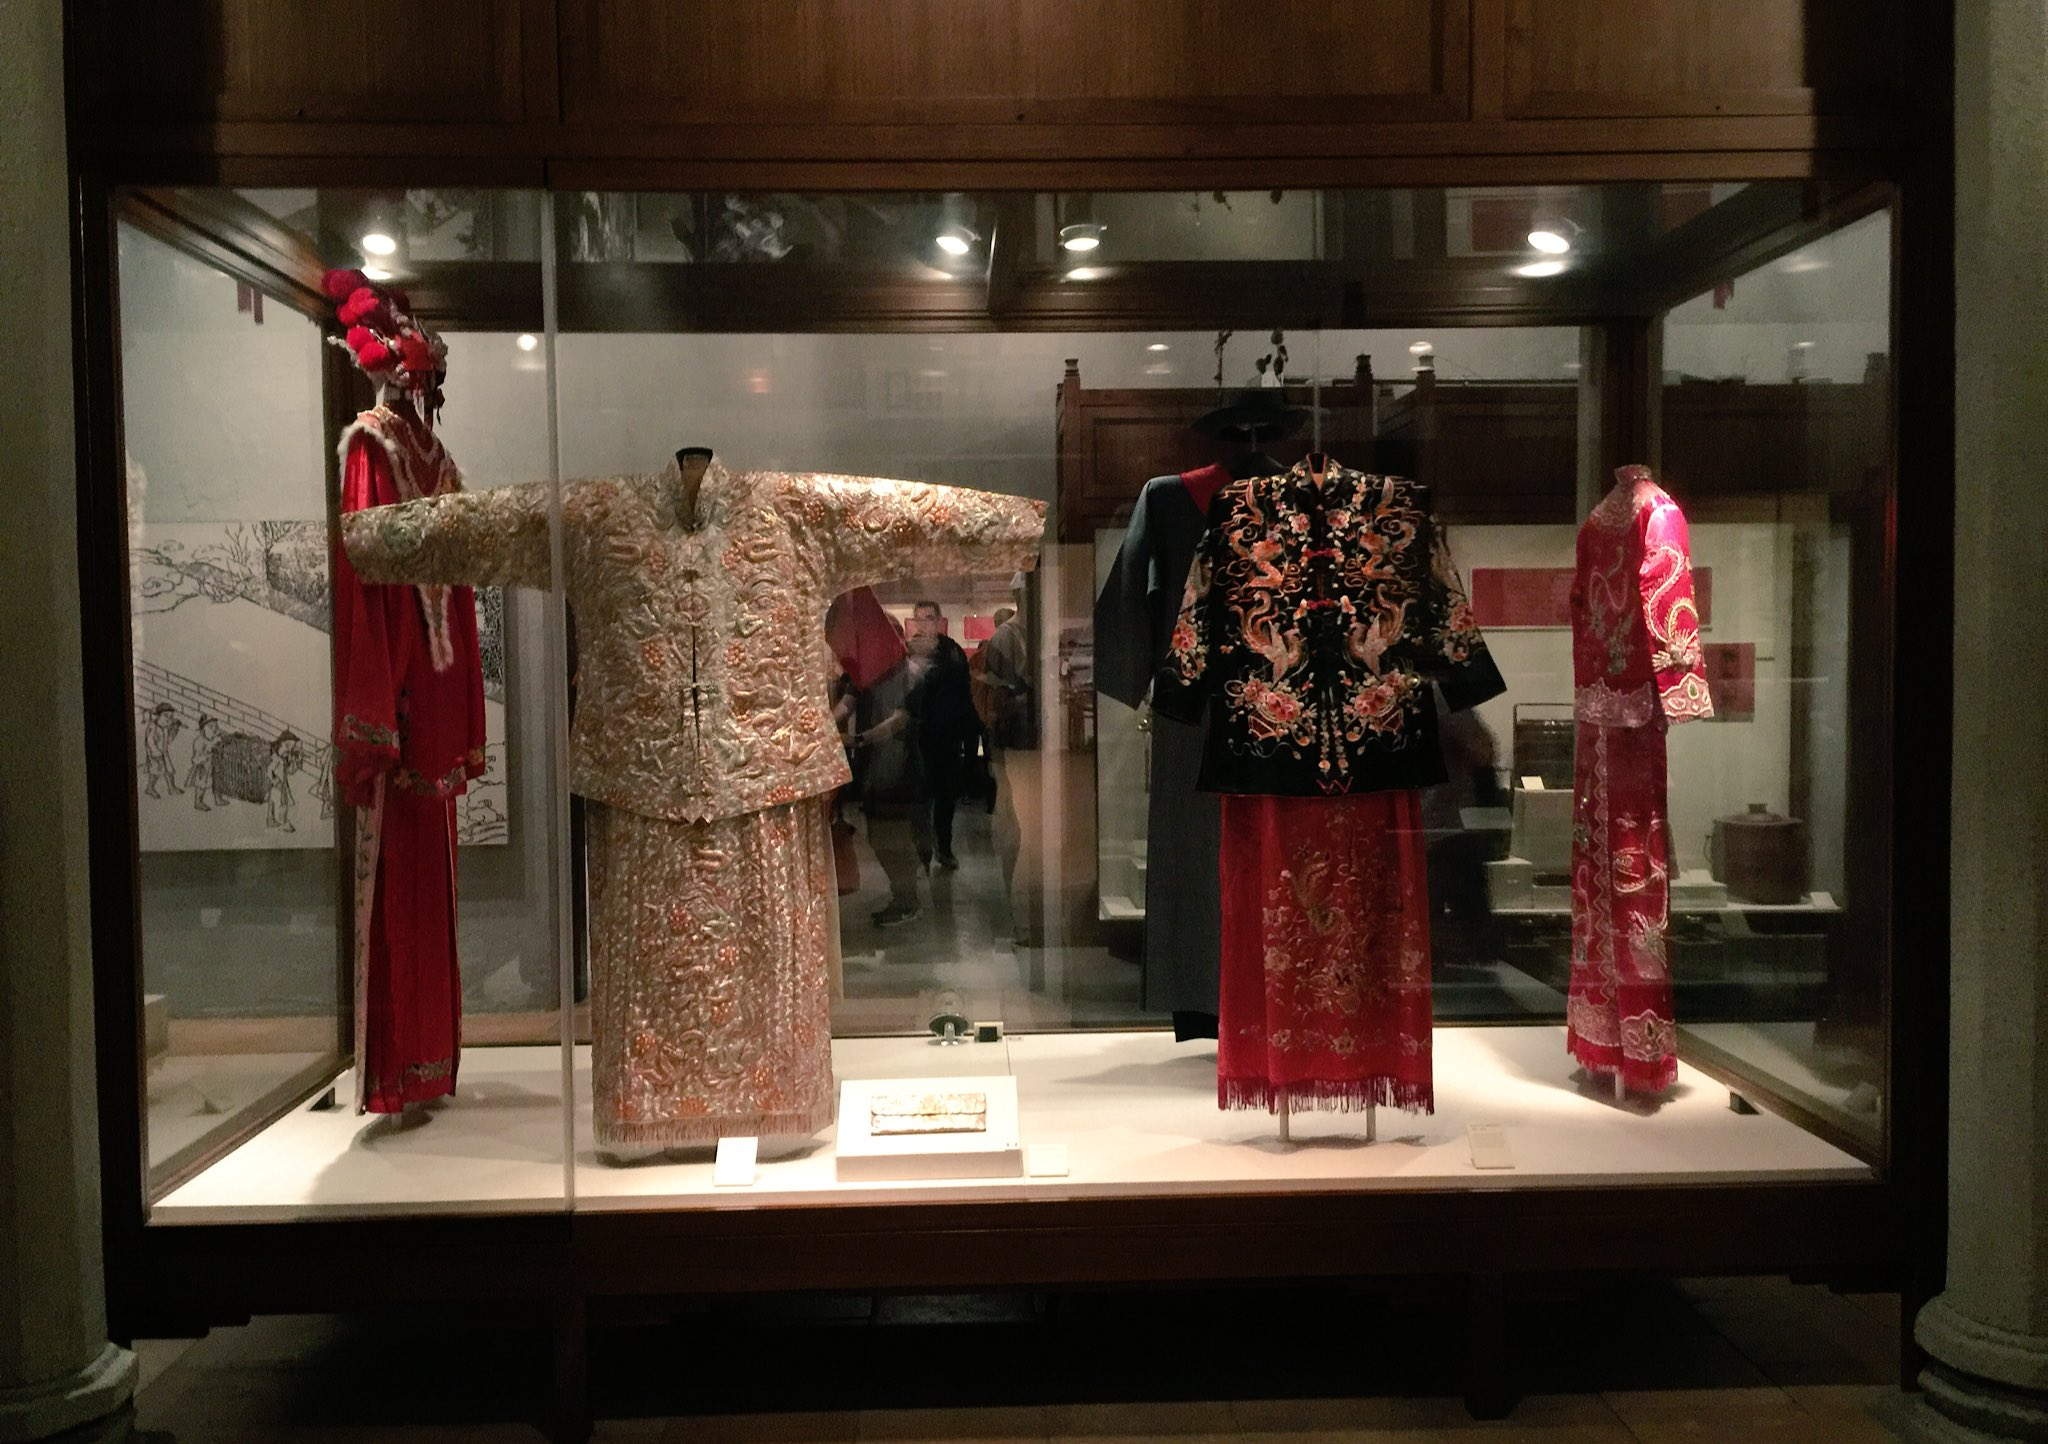 Exhibit on Punti wedding customs in Hong Kong at HK Museum of History. https://t.co/CMeFS5Xlsx